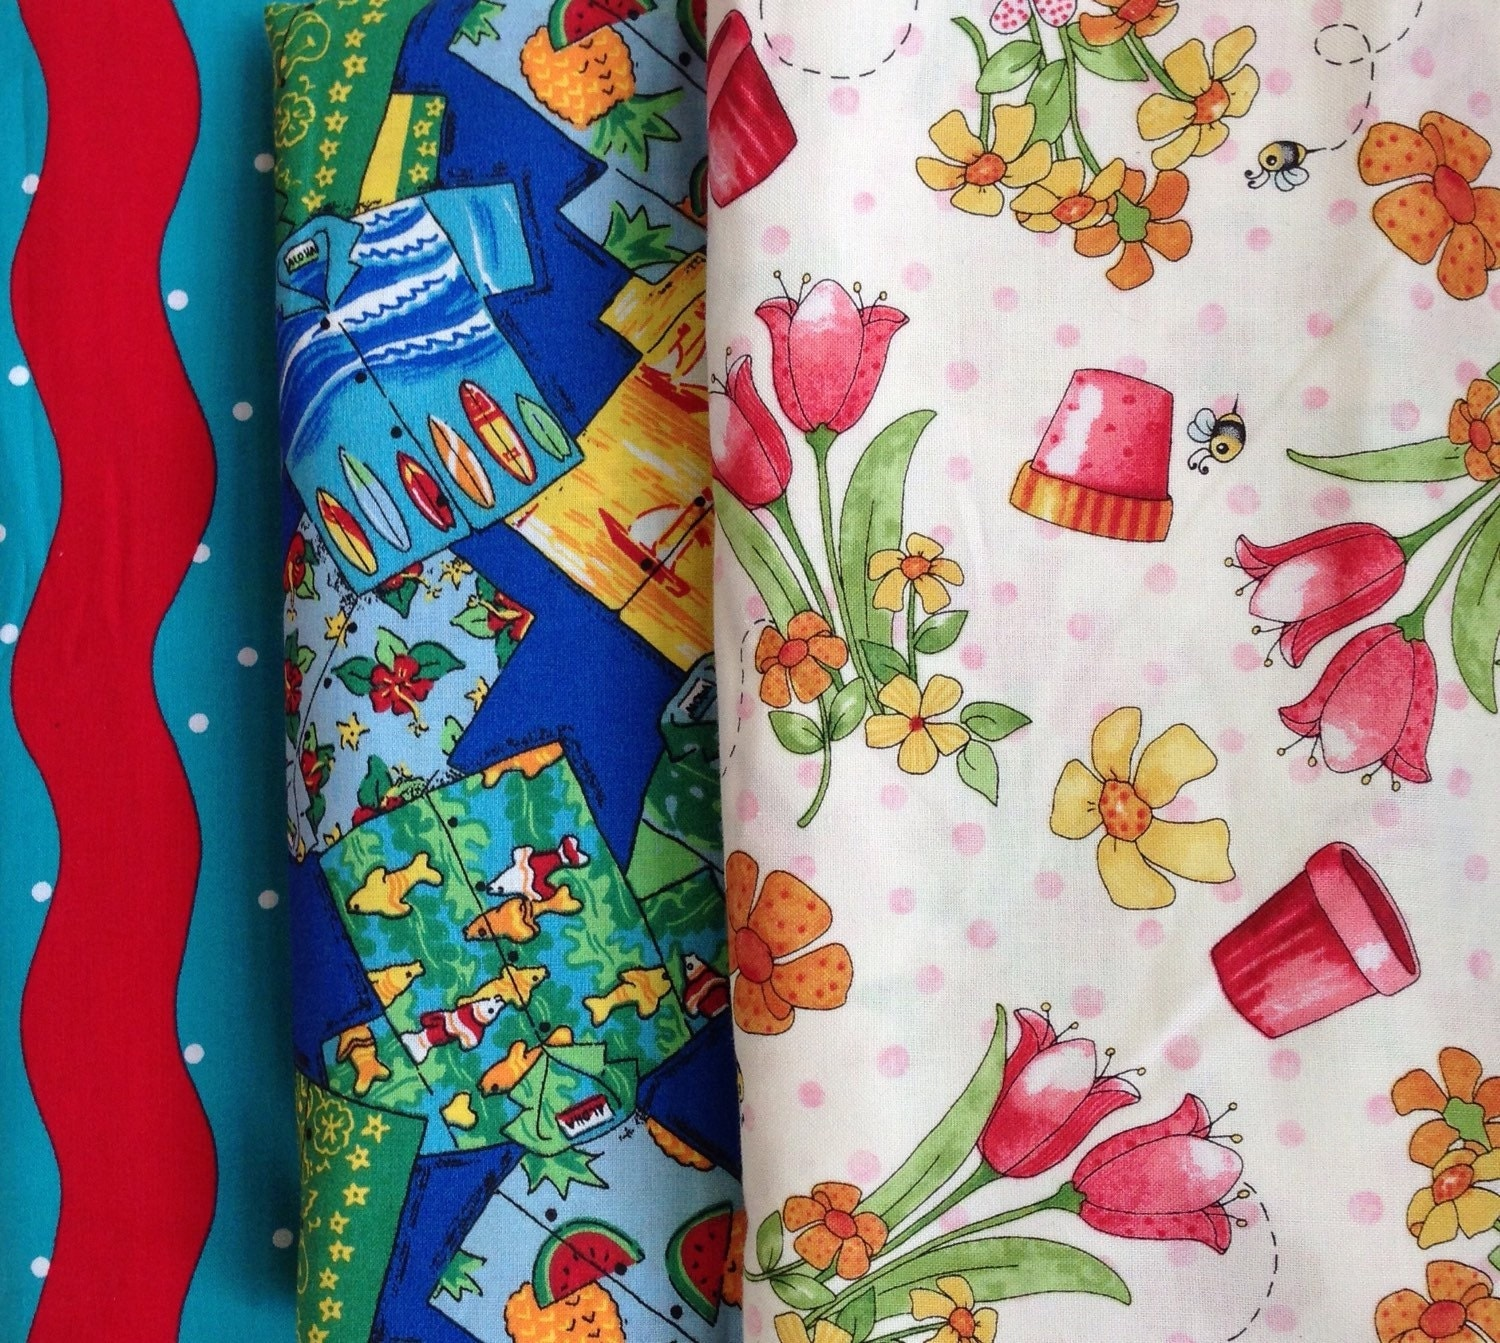 Sale fabric by the yard by scire4 on etsy for Fabric for sale by the yard